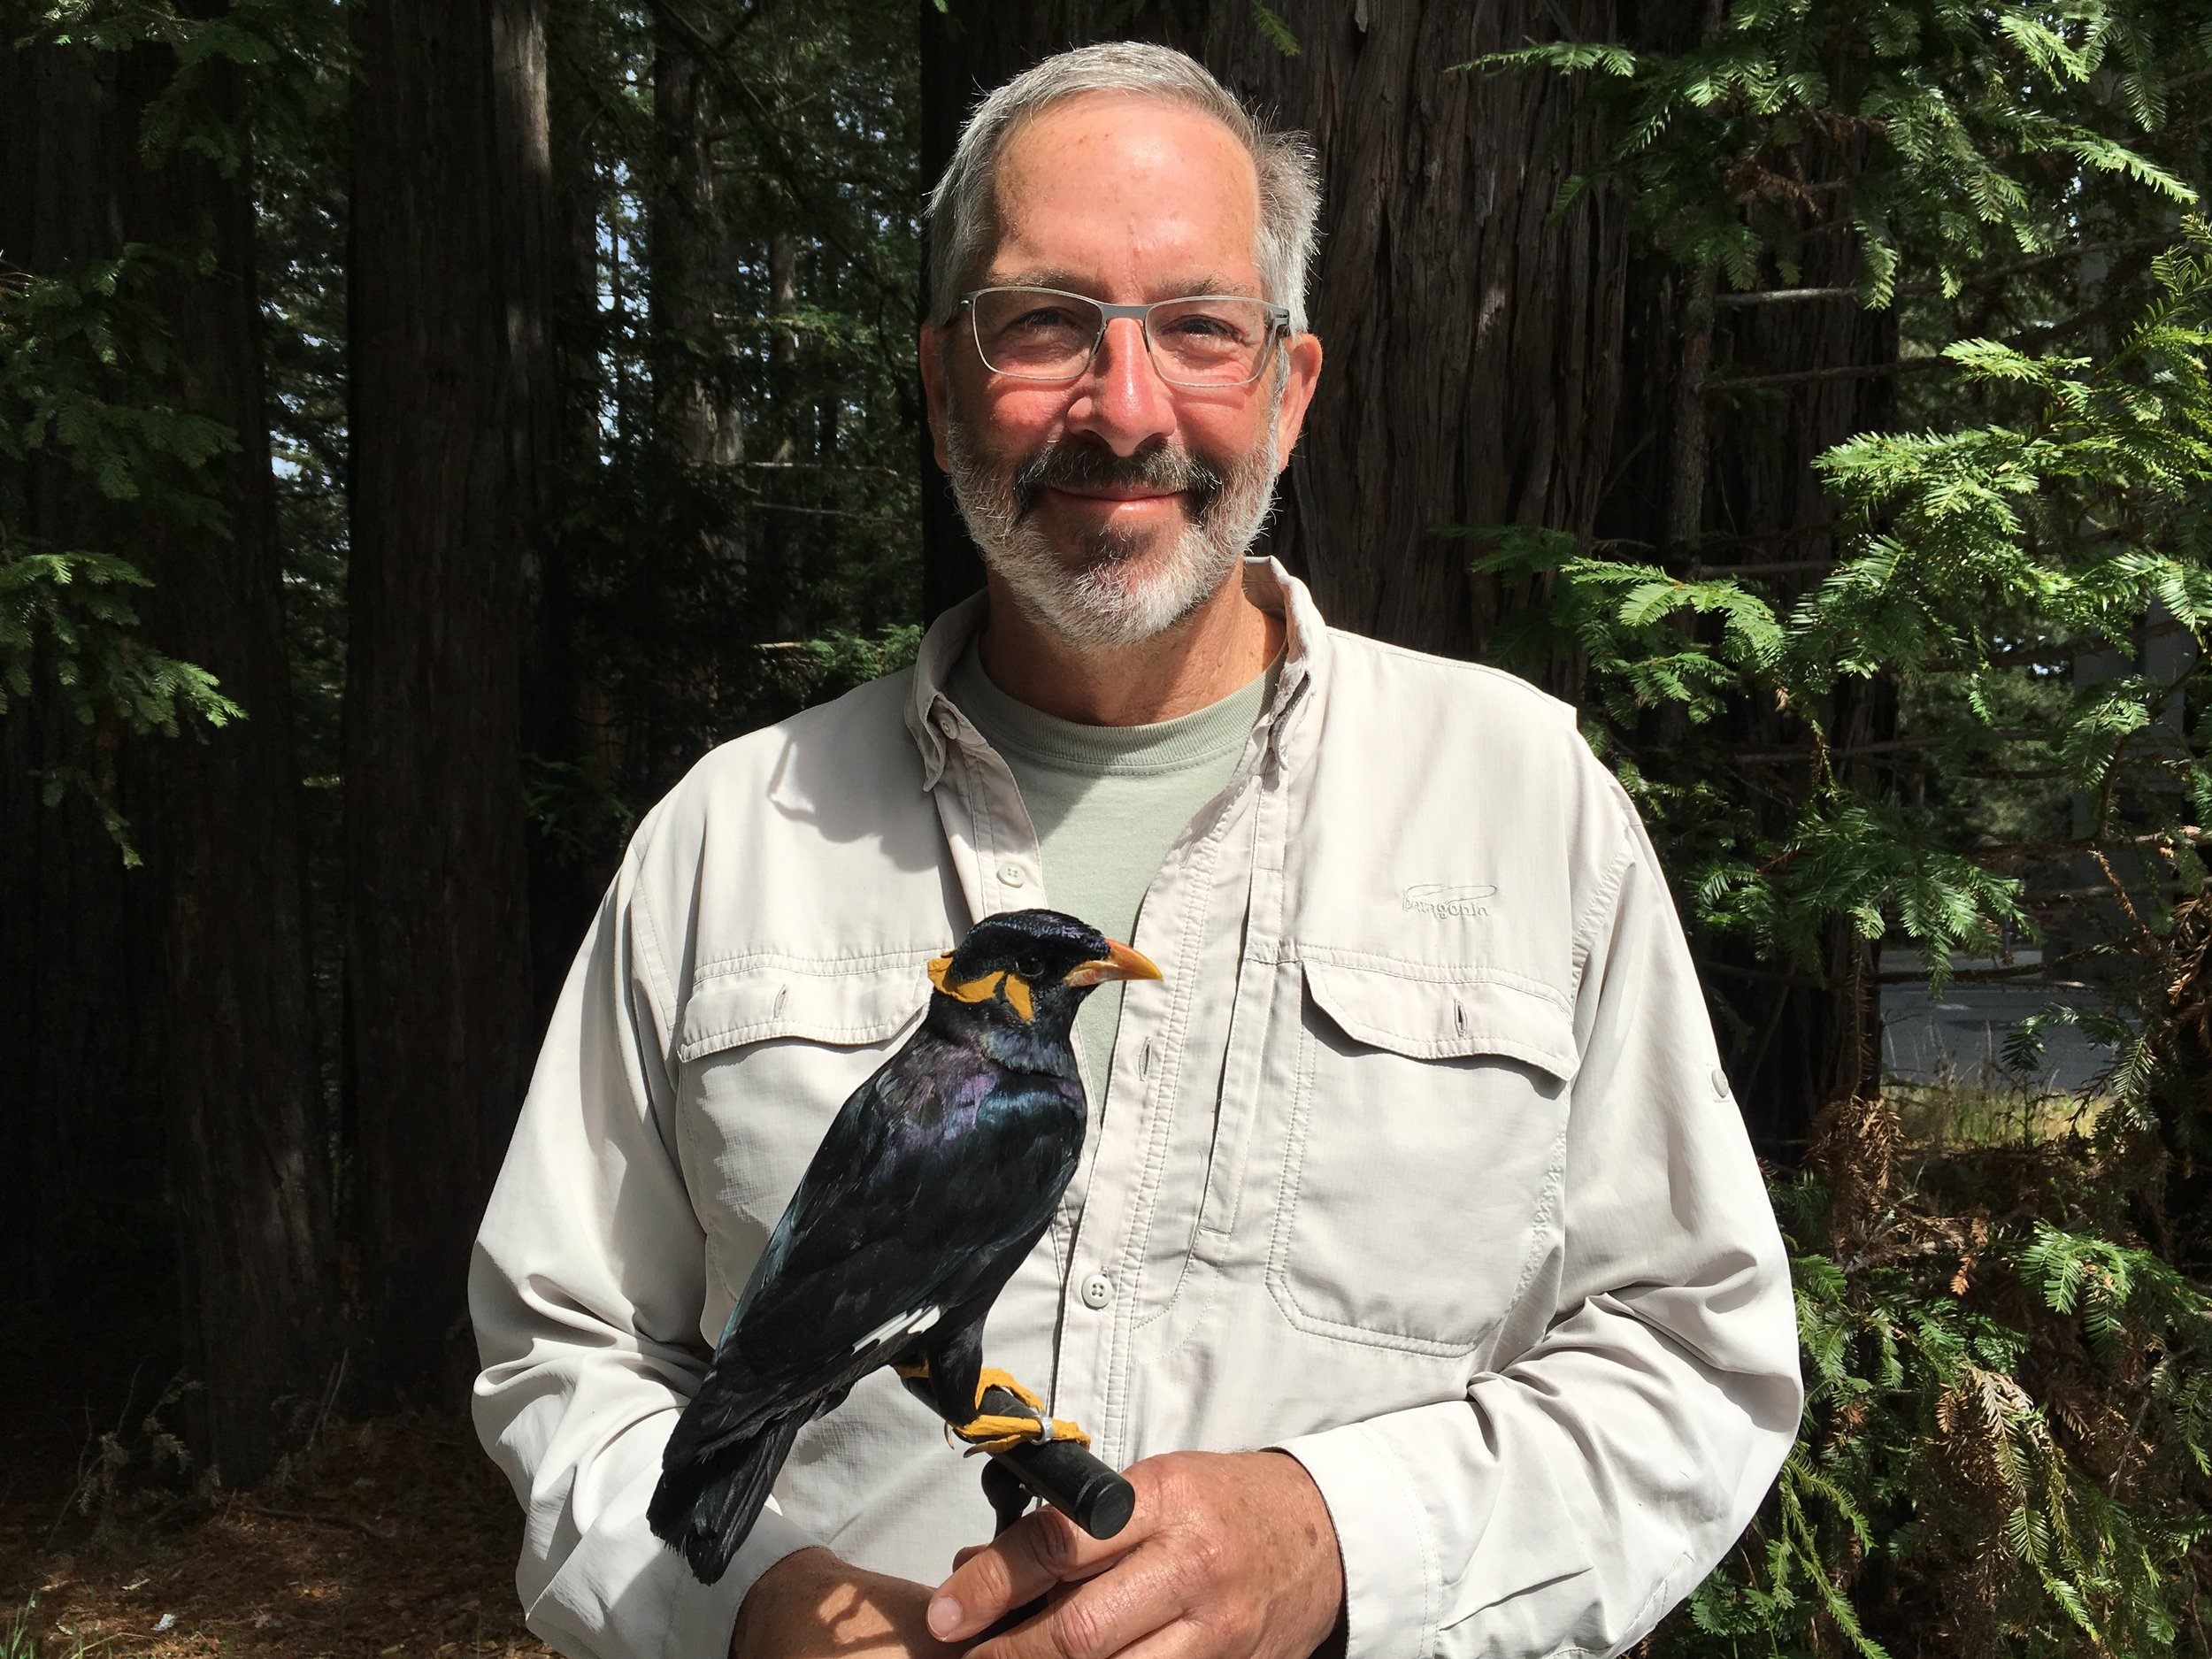 Mike Bolte   Board Member   Mike is a professor of astronomy at UC Santa Cruz as well as the Emeritus Director of UC Observatories. So what's he doing on BSP's Board?  See for yourself!  Mike is a birder and wildlife photographer. Though he has years of experience raising financial support for observatories and telescopes, he also has the lens of a naturalist and educator.